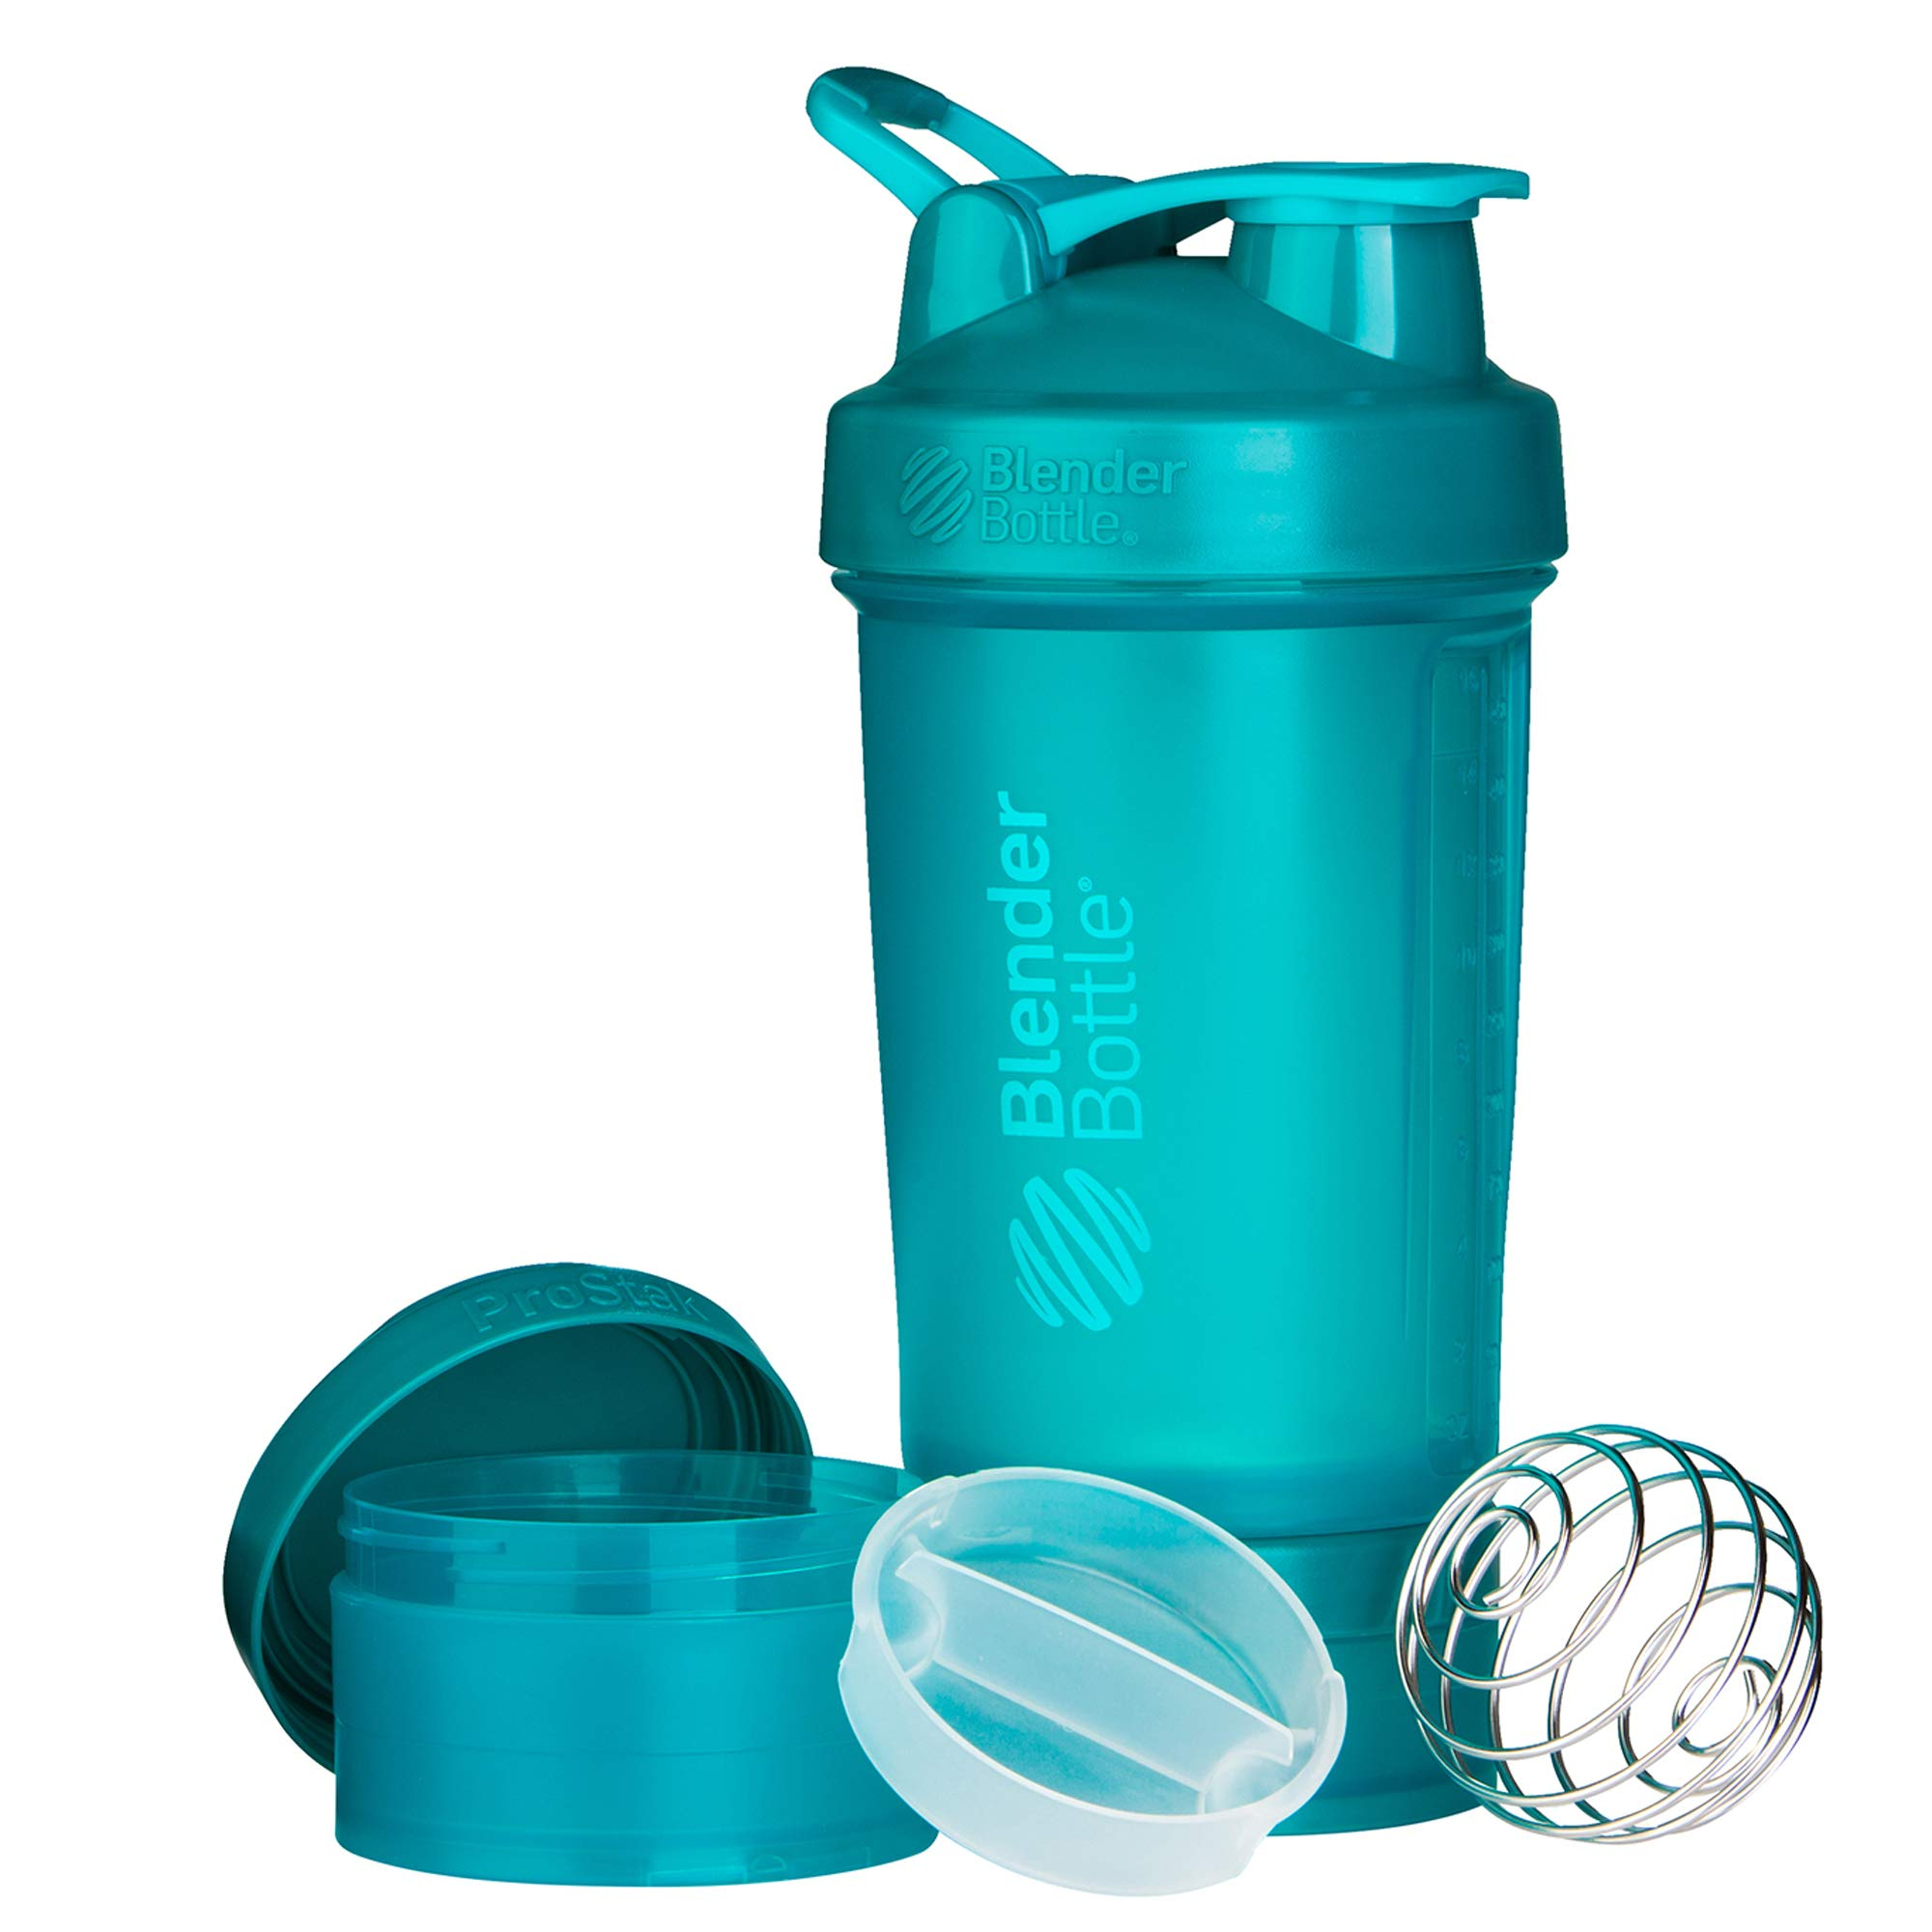 BlenderBottle Shaker Bottle with Pill Organizer and Storage for Protein Powder, ProStak System, 22-Ounce, Teal